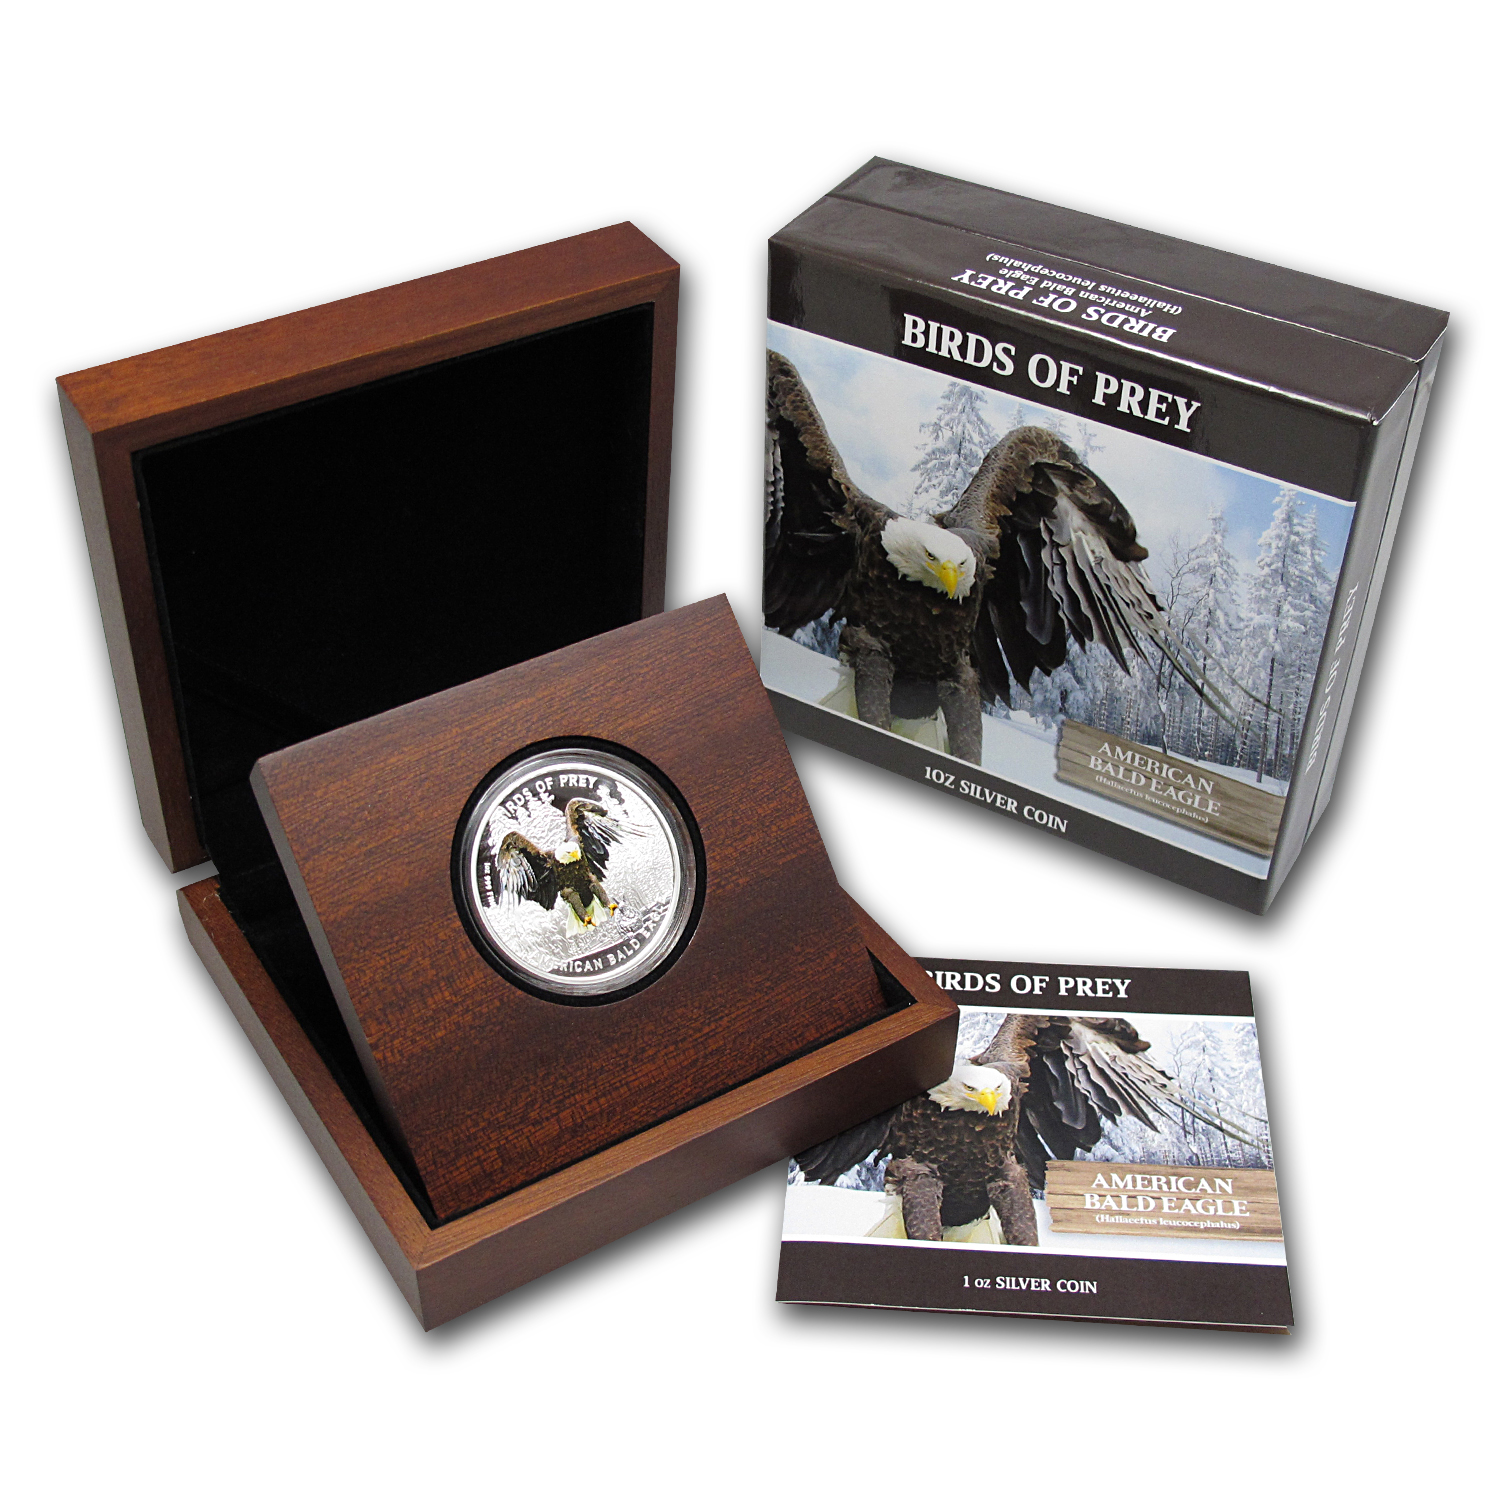 2013 1 oz Silver Niue Birds of Prey - American Bald Eagle